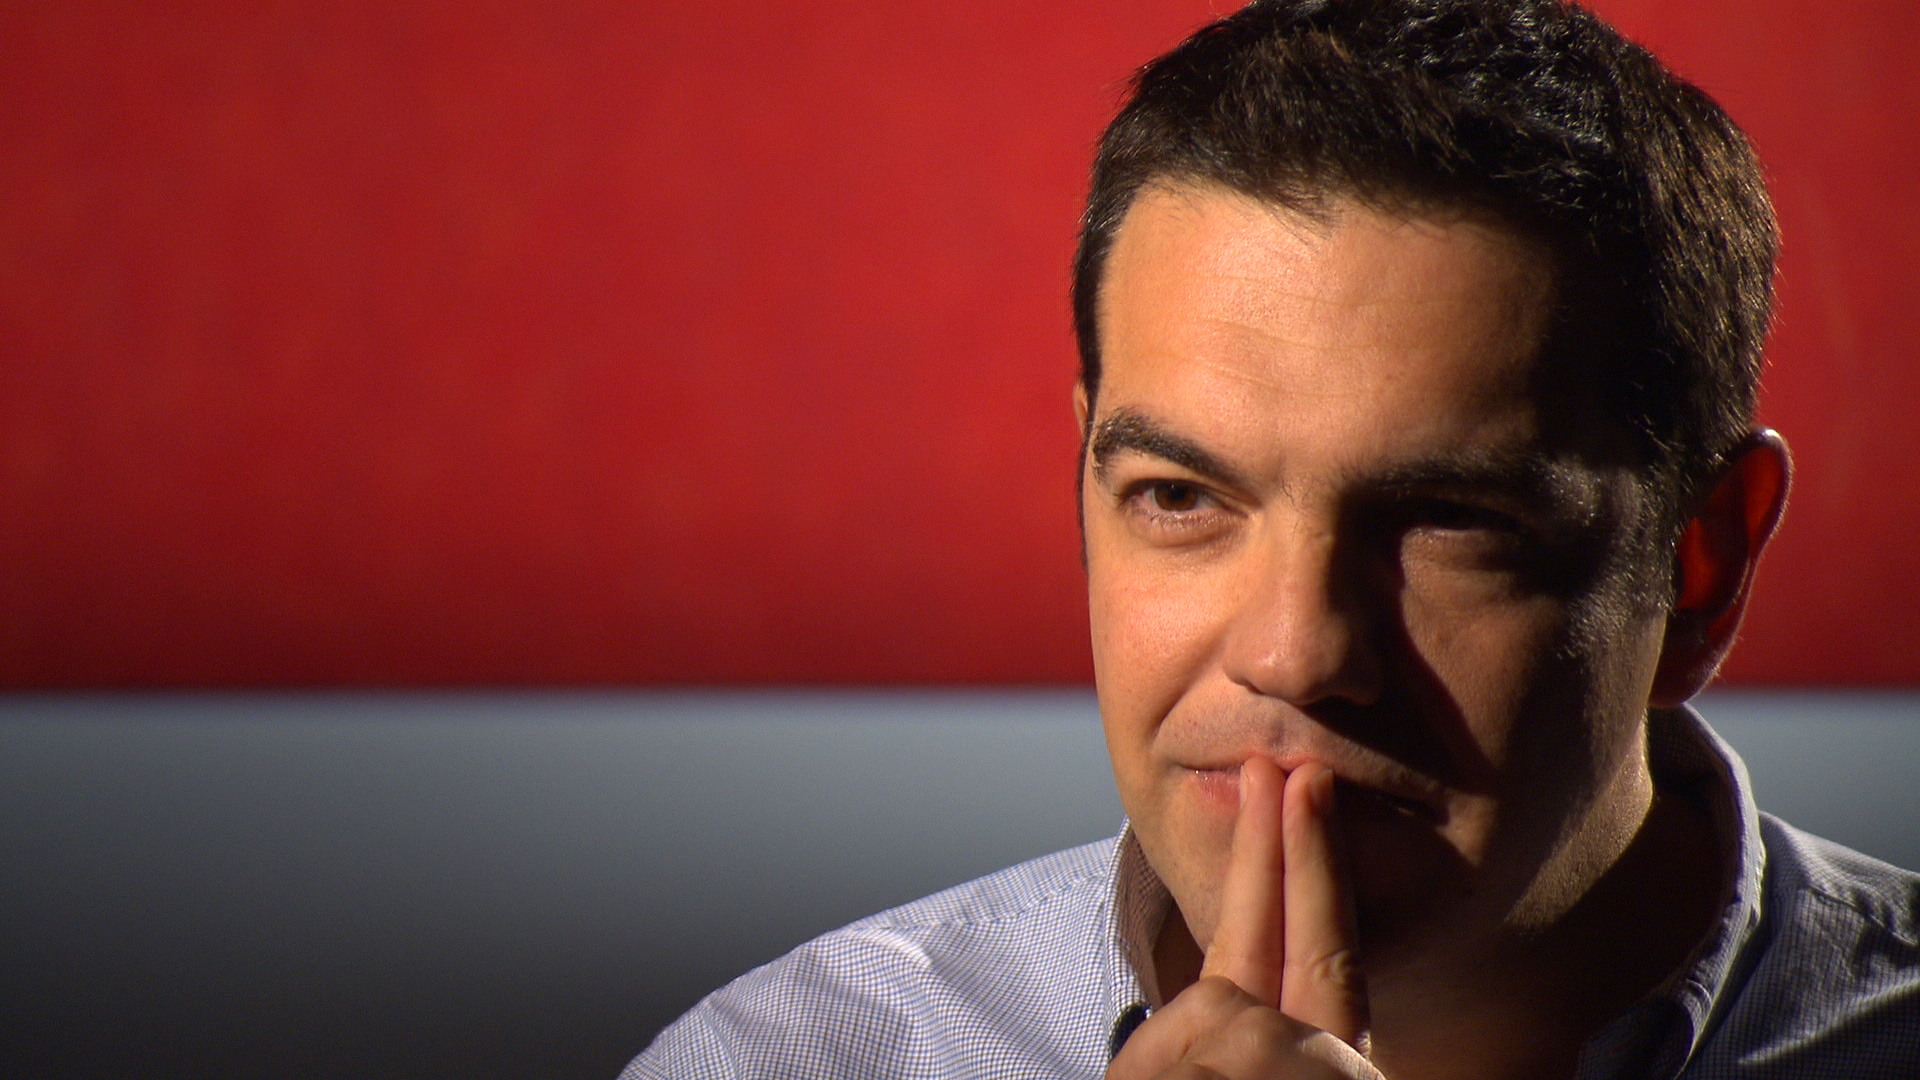 Alexis Tsipras im Interview mit Stephan Lamby